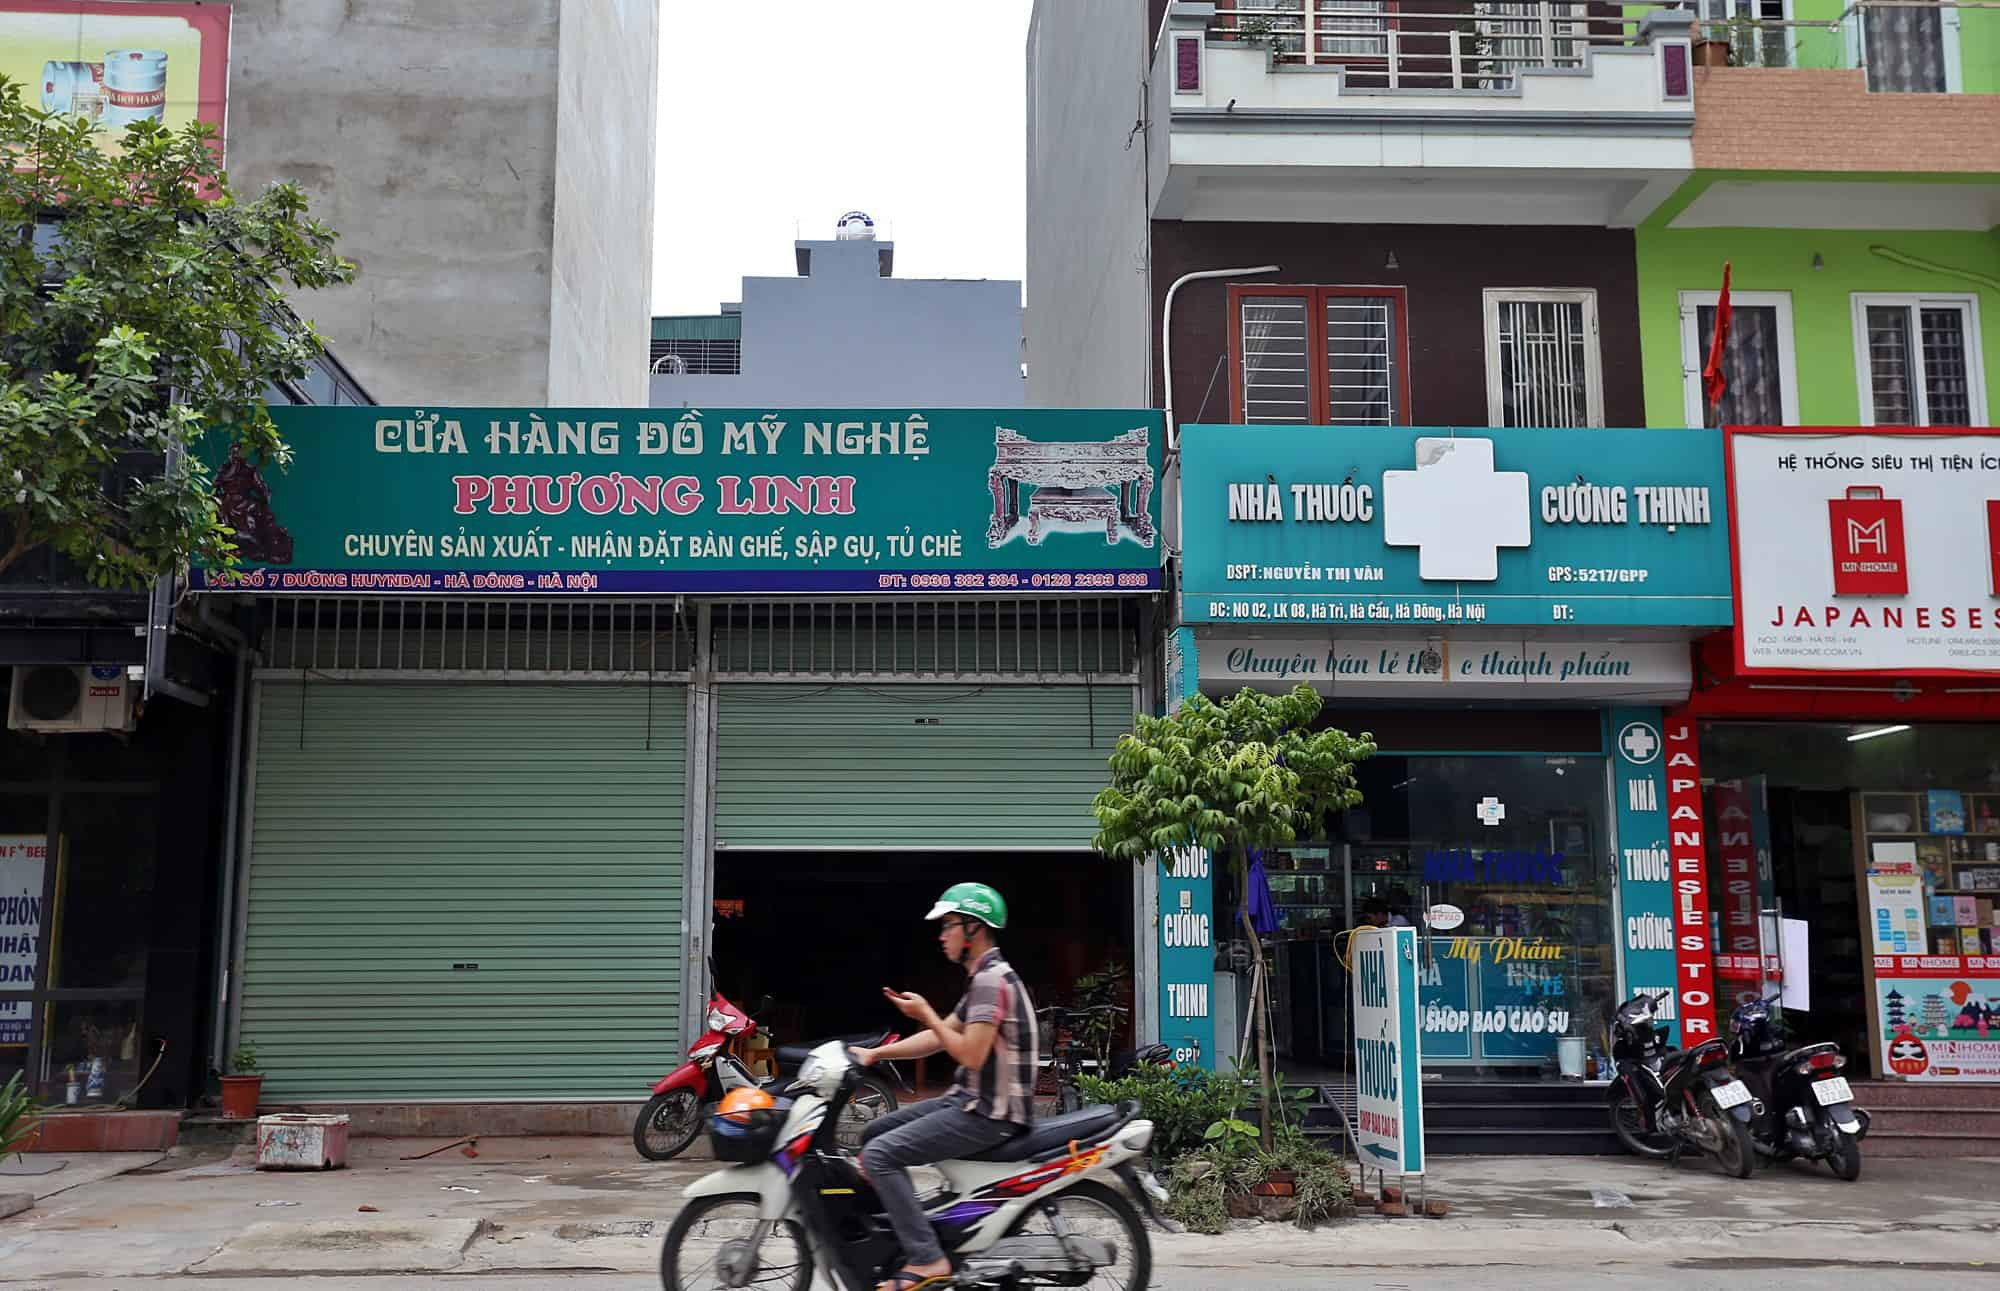 How to Ask for Direction in Vietnamese